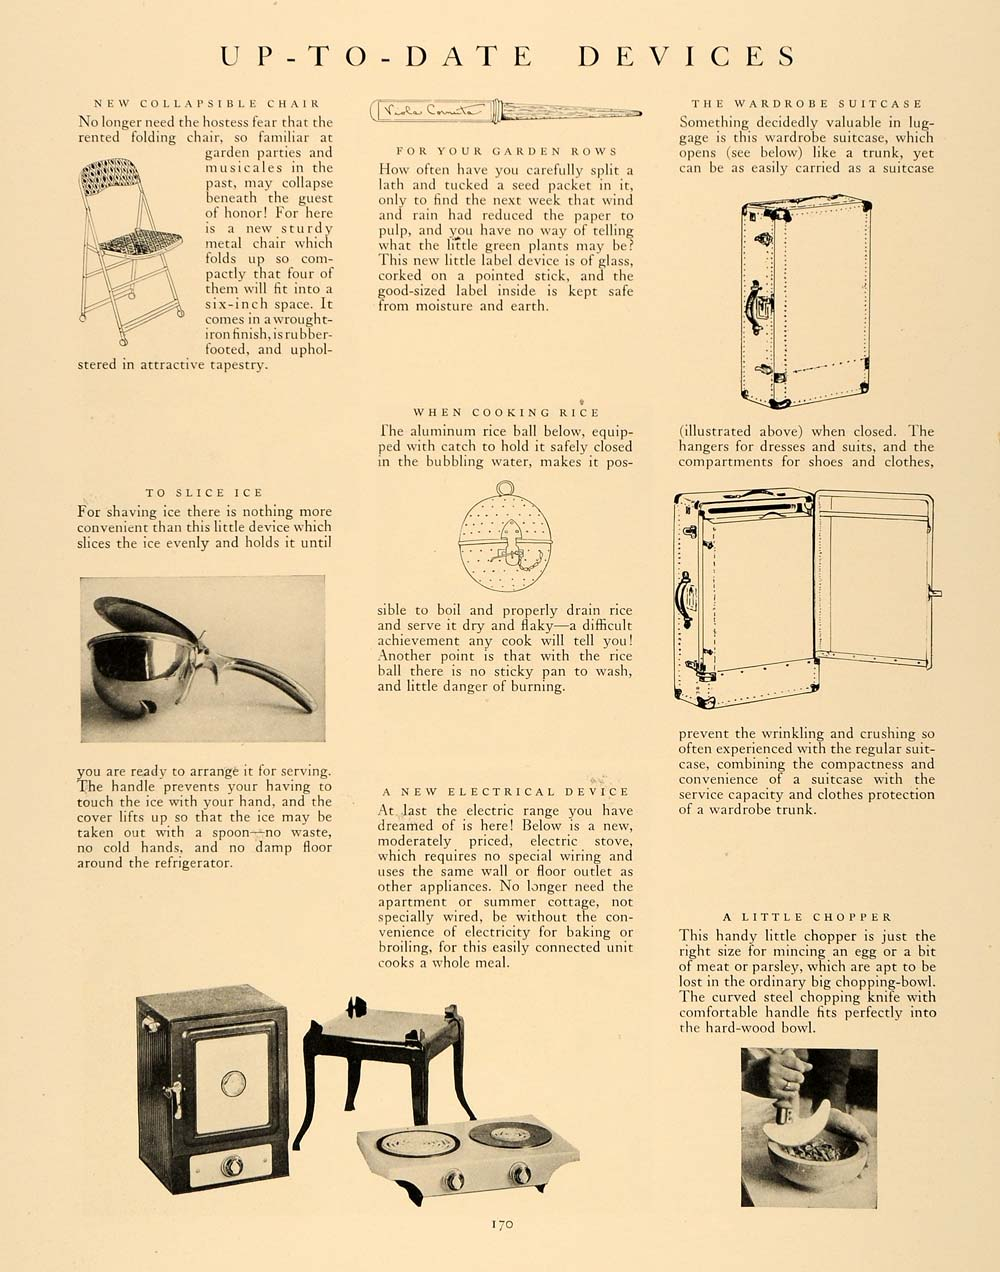 1927 Article Antique Home Appliances Ice Slicer Chopper - ORIGINAL GHB1